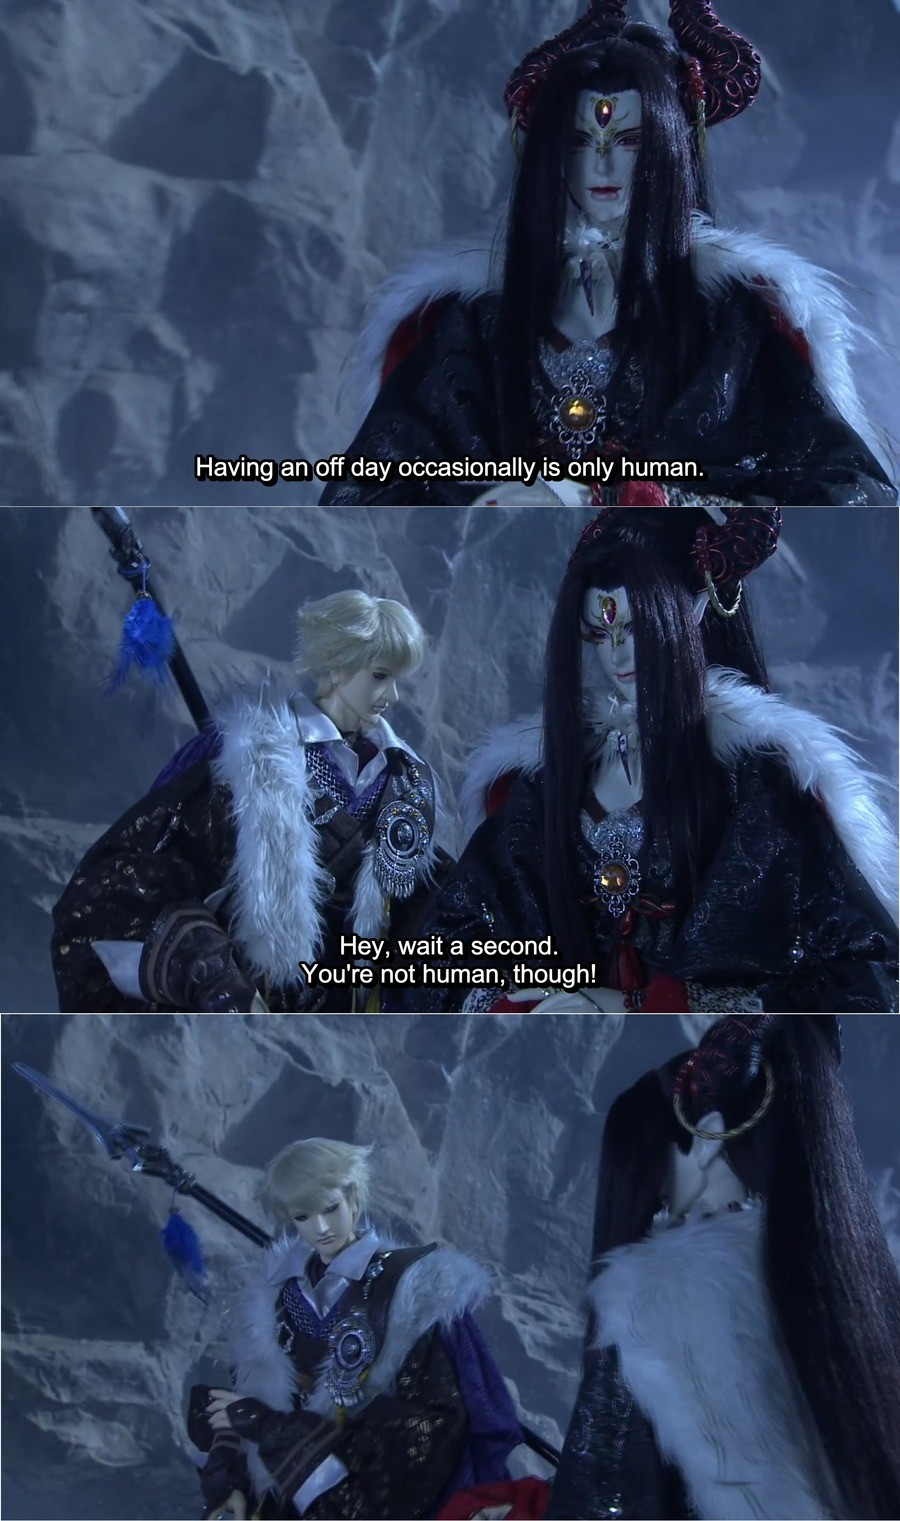 The Audacity of This . Thunderbolt Fantasy.. Sauce is Thunderbolt Fantasy, it's actually pretty good. The soundtrack's done by Hiroyuki Sawano. It's about legendary swords n stuff.